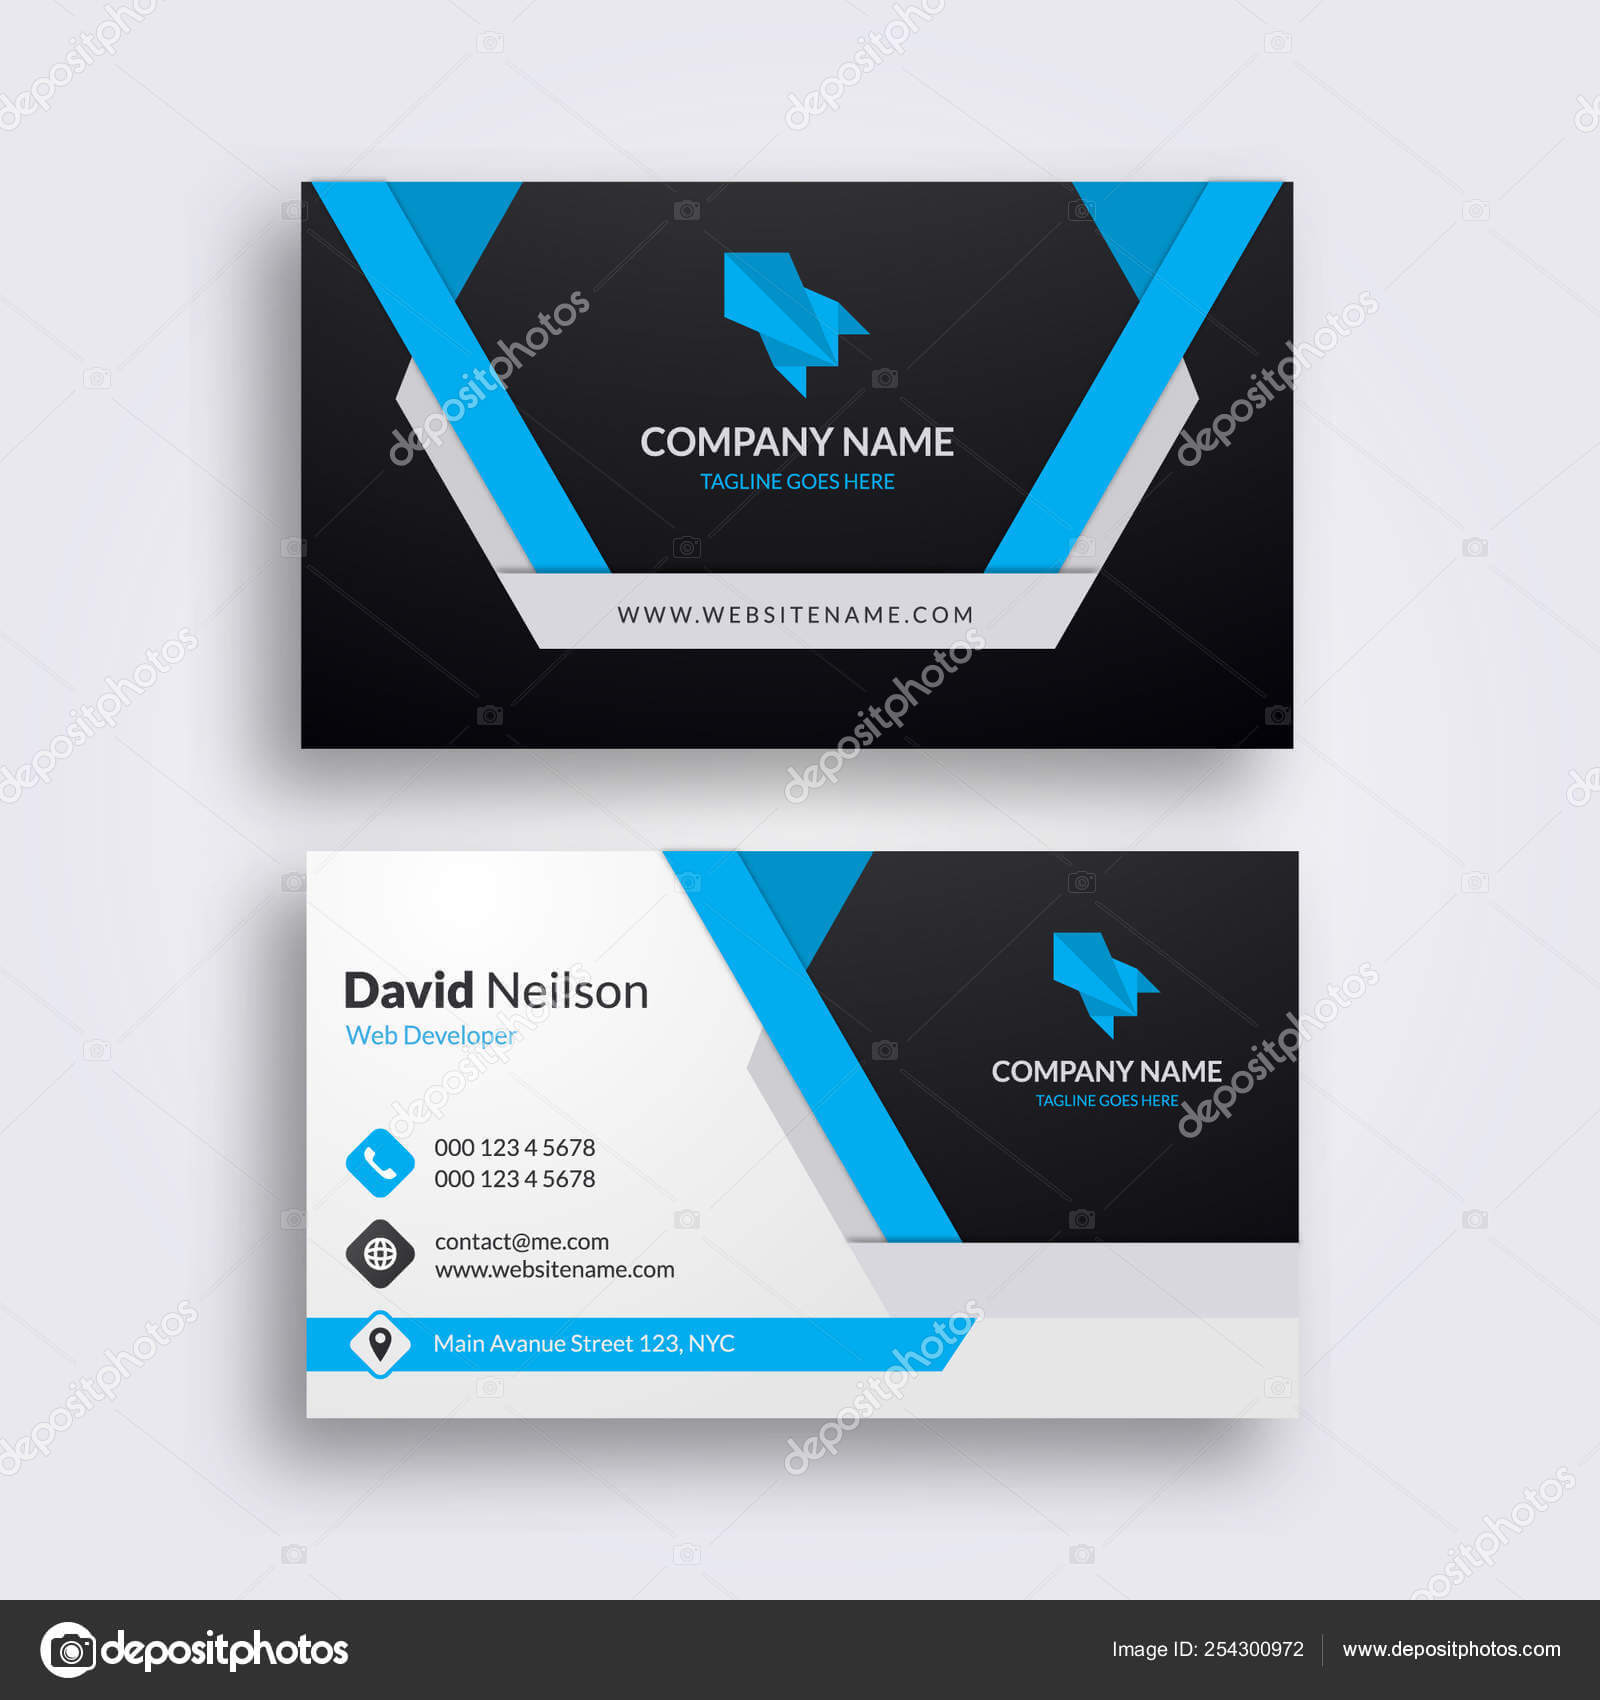 Professional Abstract Business Card Clean Fresh Design Regarding Visiting Card Illustrator Templates Download